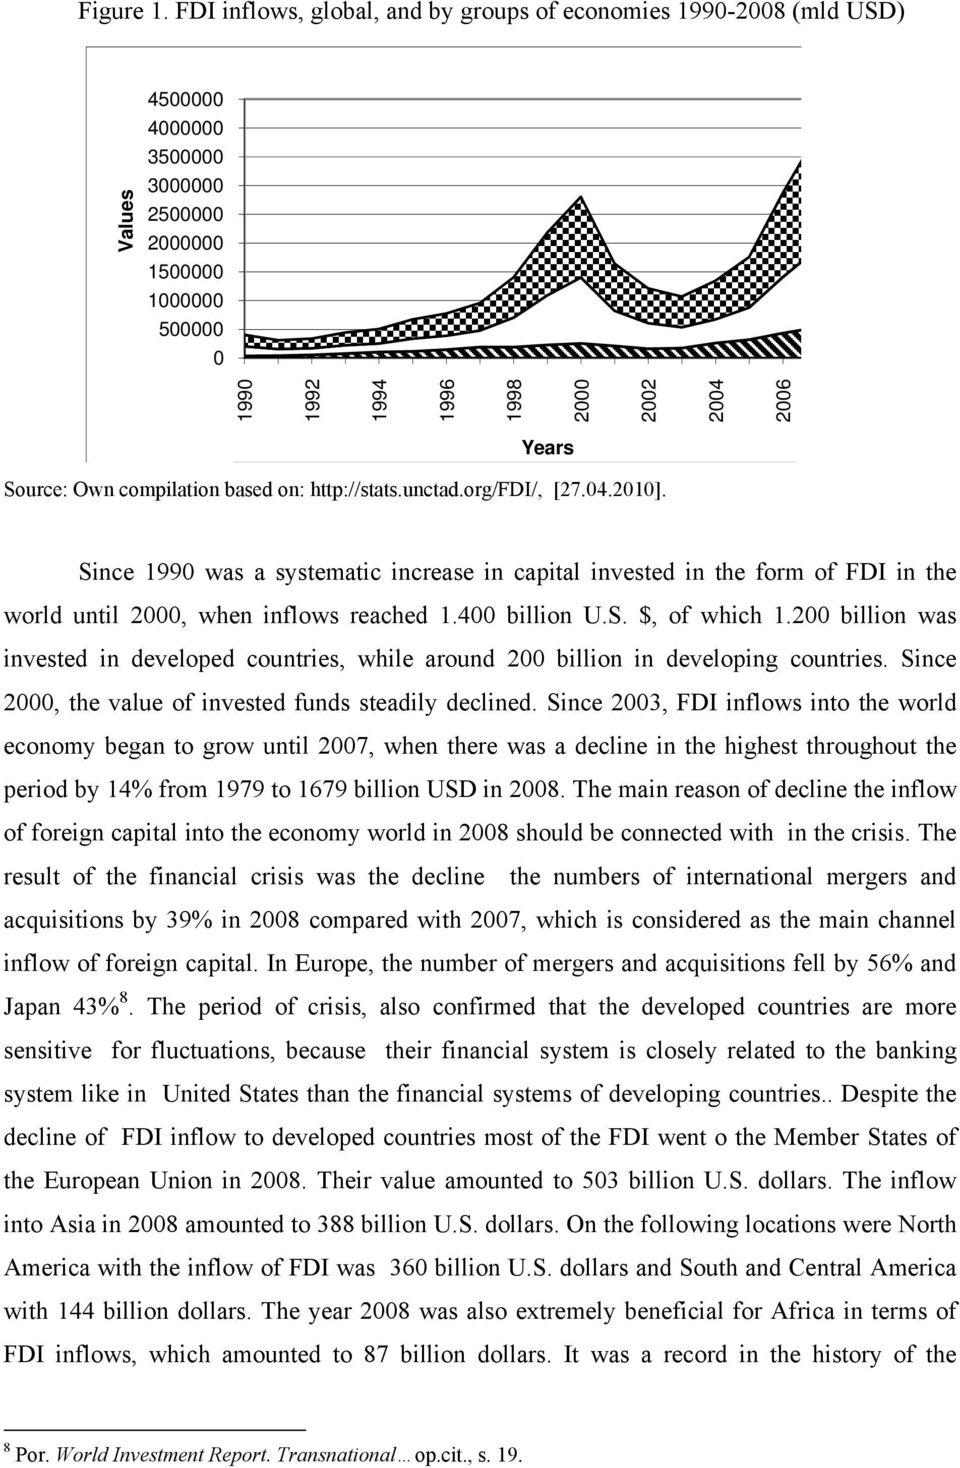 Source: Own compilation based on: http://stats.unctad.org/fdi/, [27.04.2010].